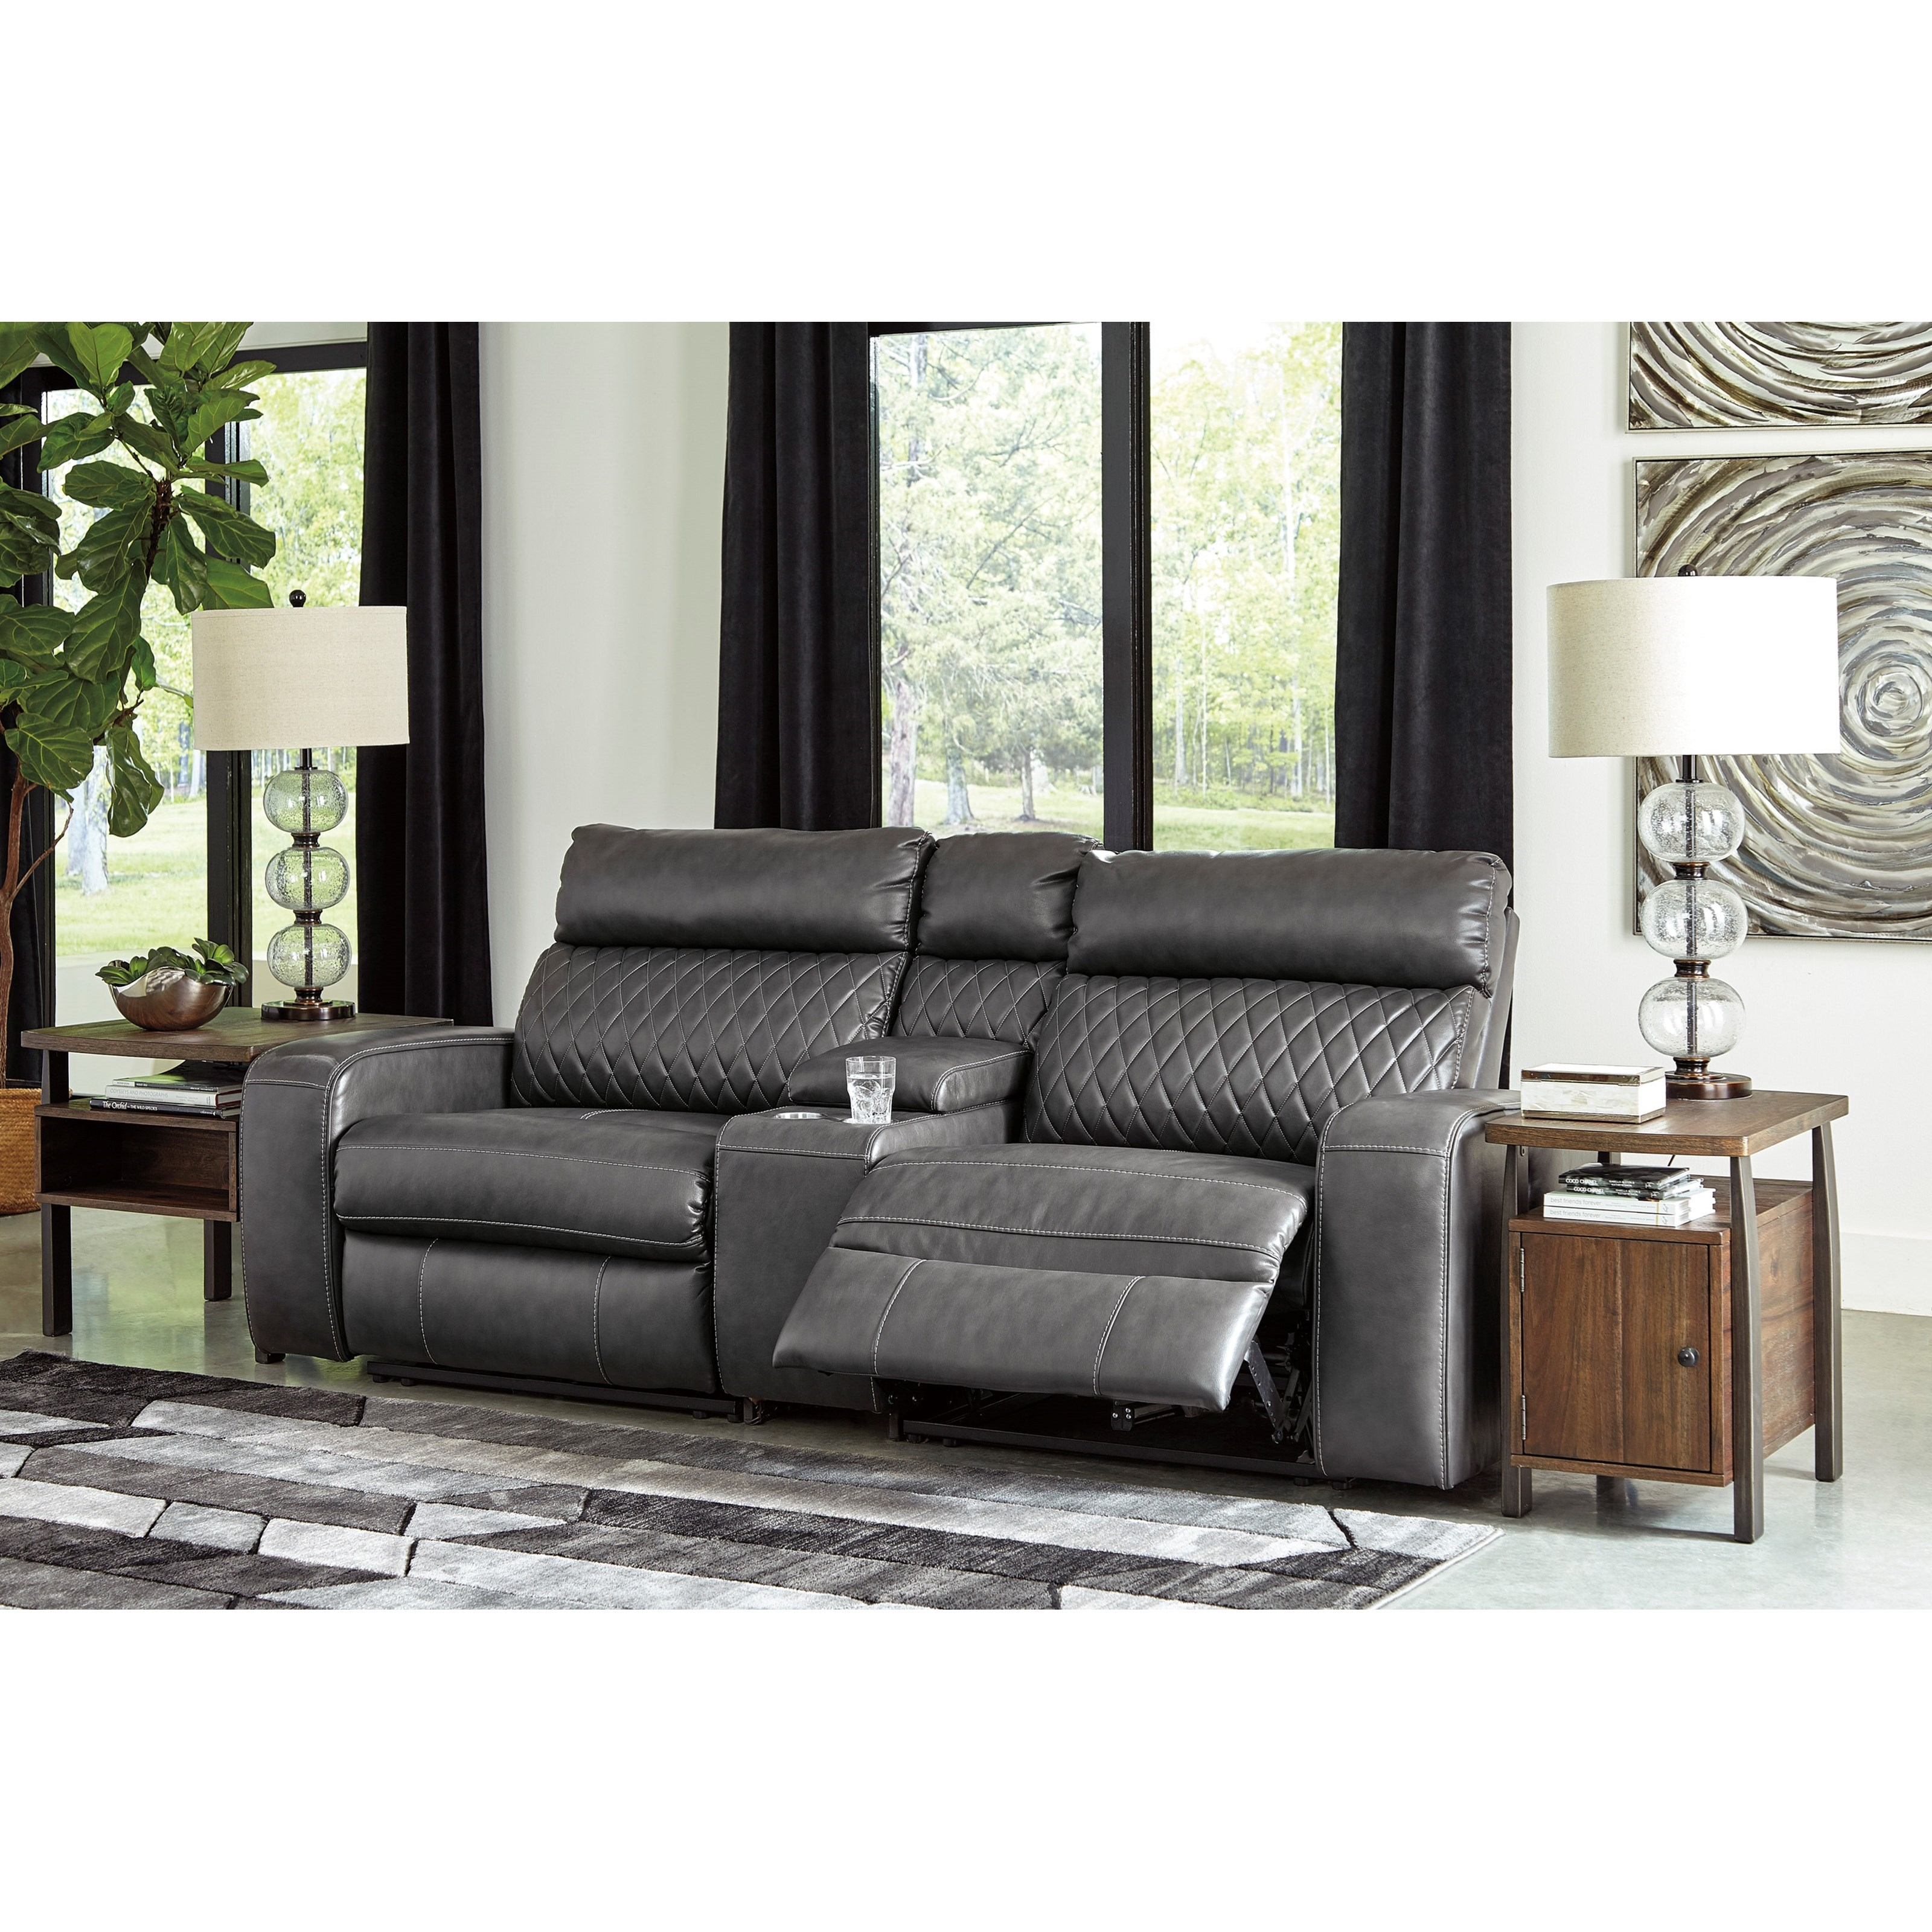 B751 Transitional Reclining Sectional With Storage Console: Signature Design By Ashley Samperstone Transitional Power